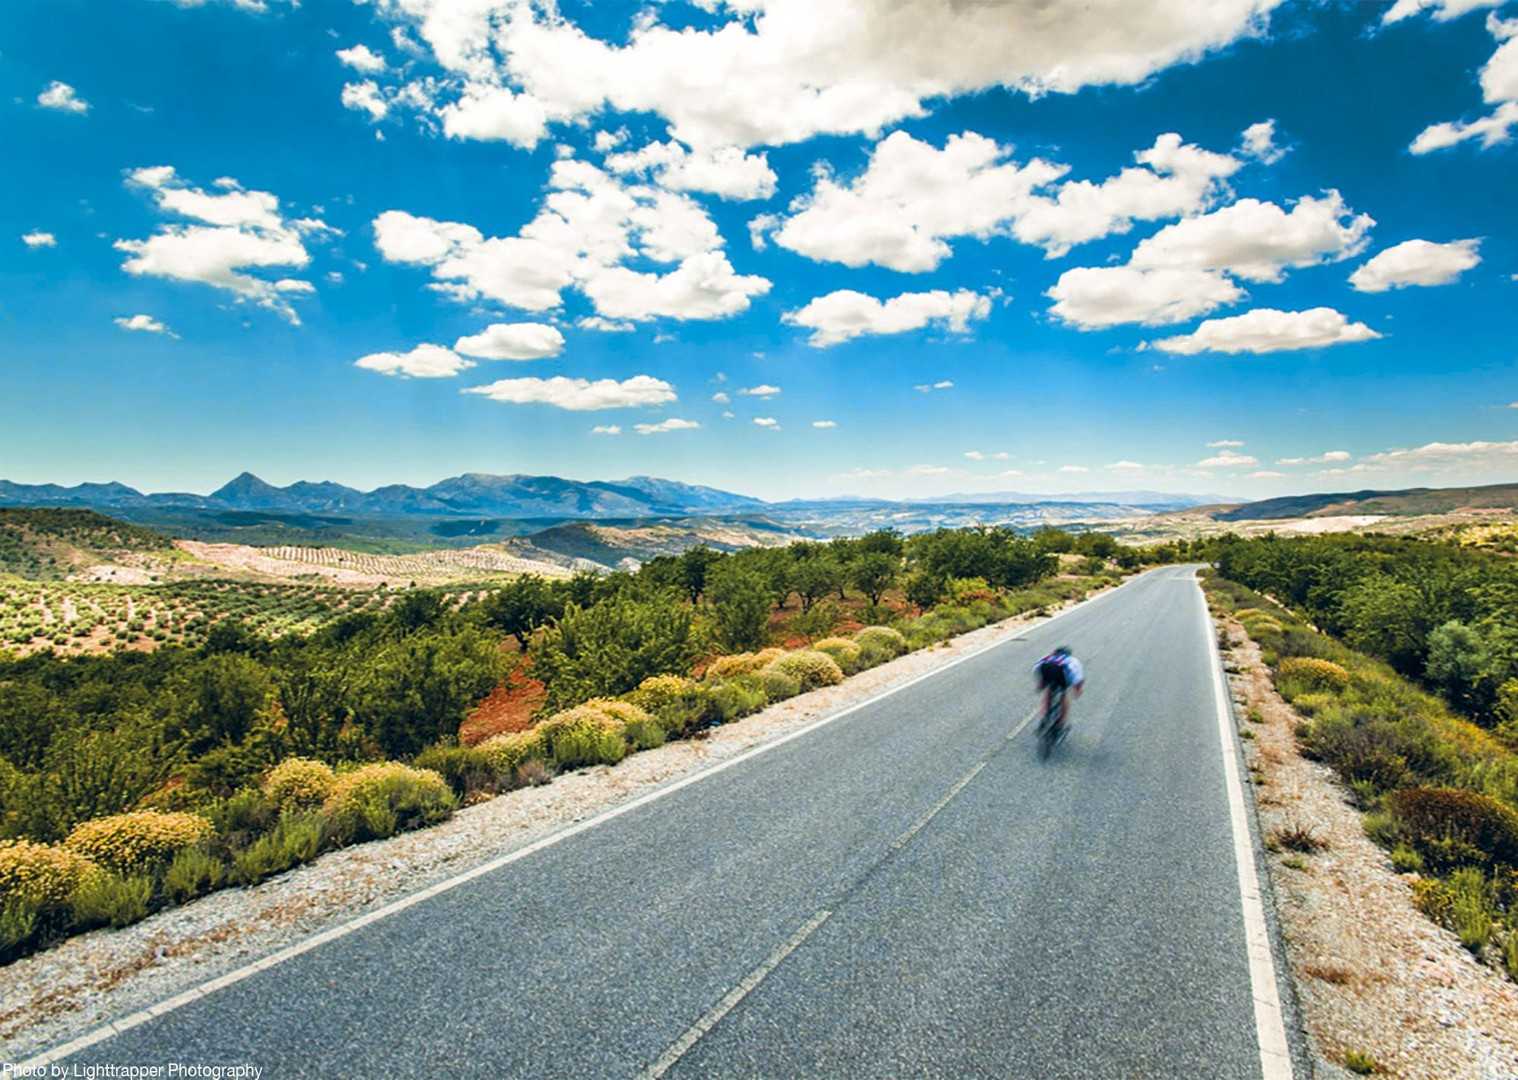 southern-spain-road-cycling-smooth-tarmac-incredible-views.jpg - Southern Spain - Andalucia - Los Pueblos Blancos - Self-Guided Road Cycling Holiday - Road Cycling